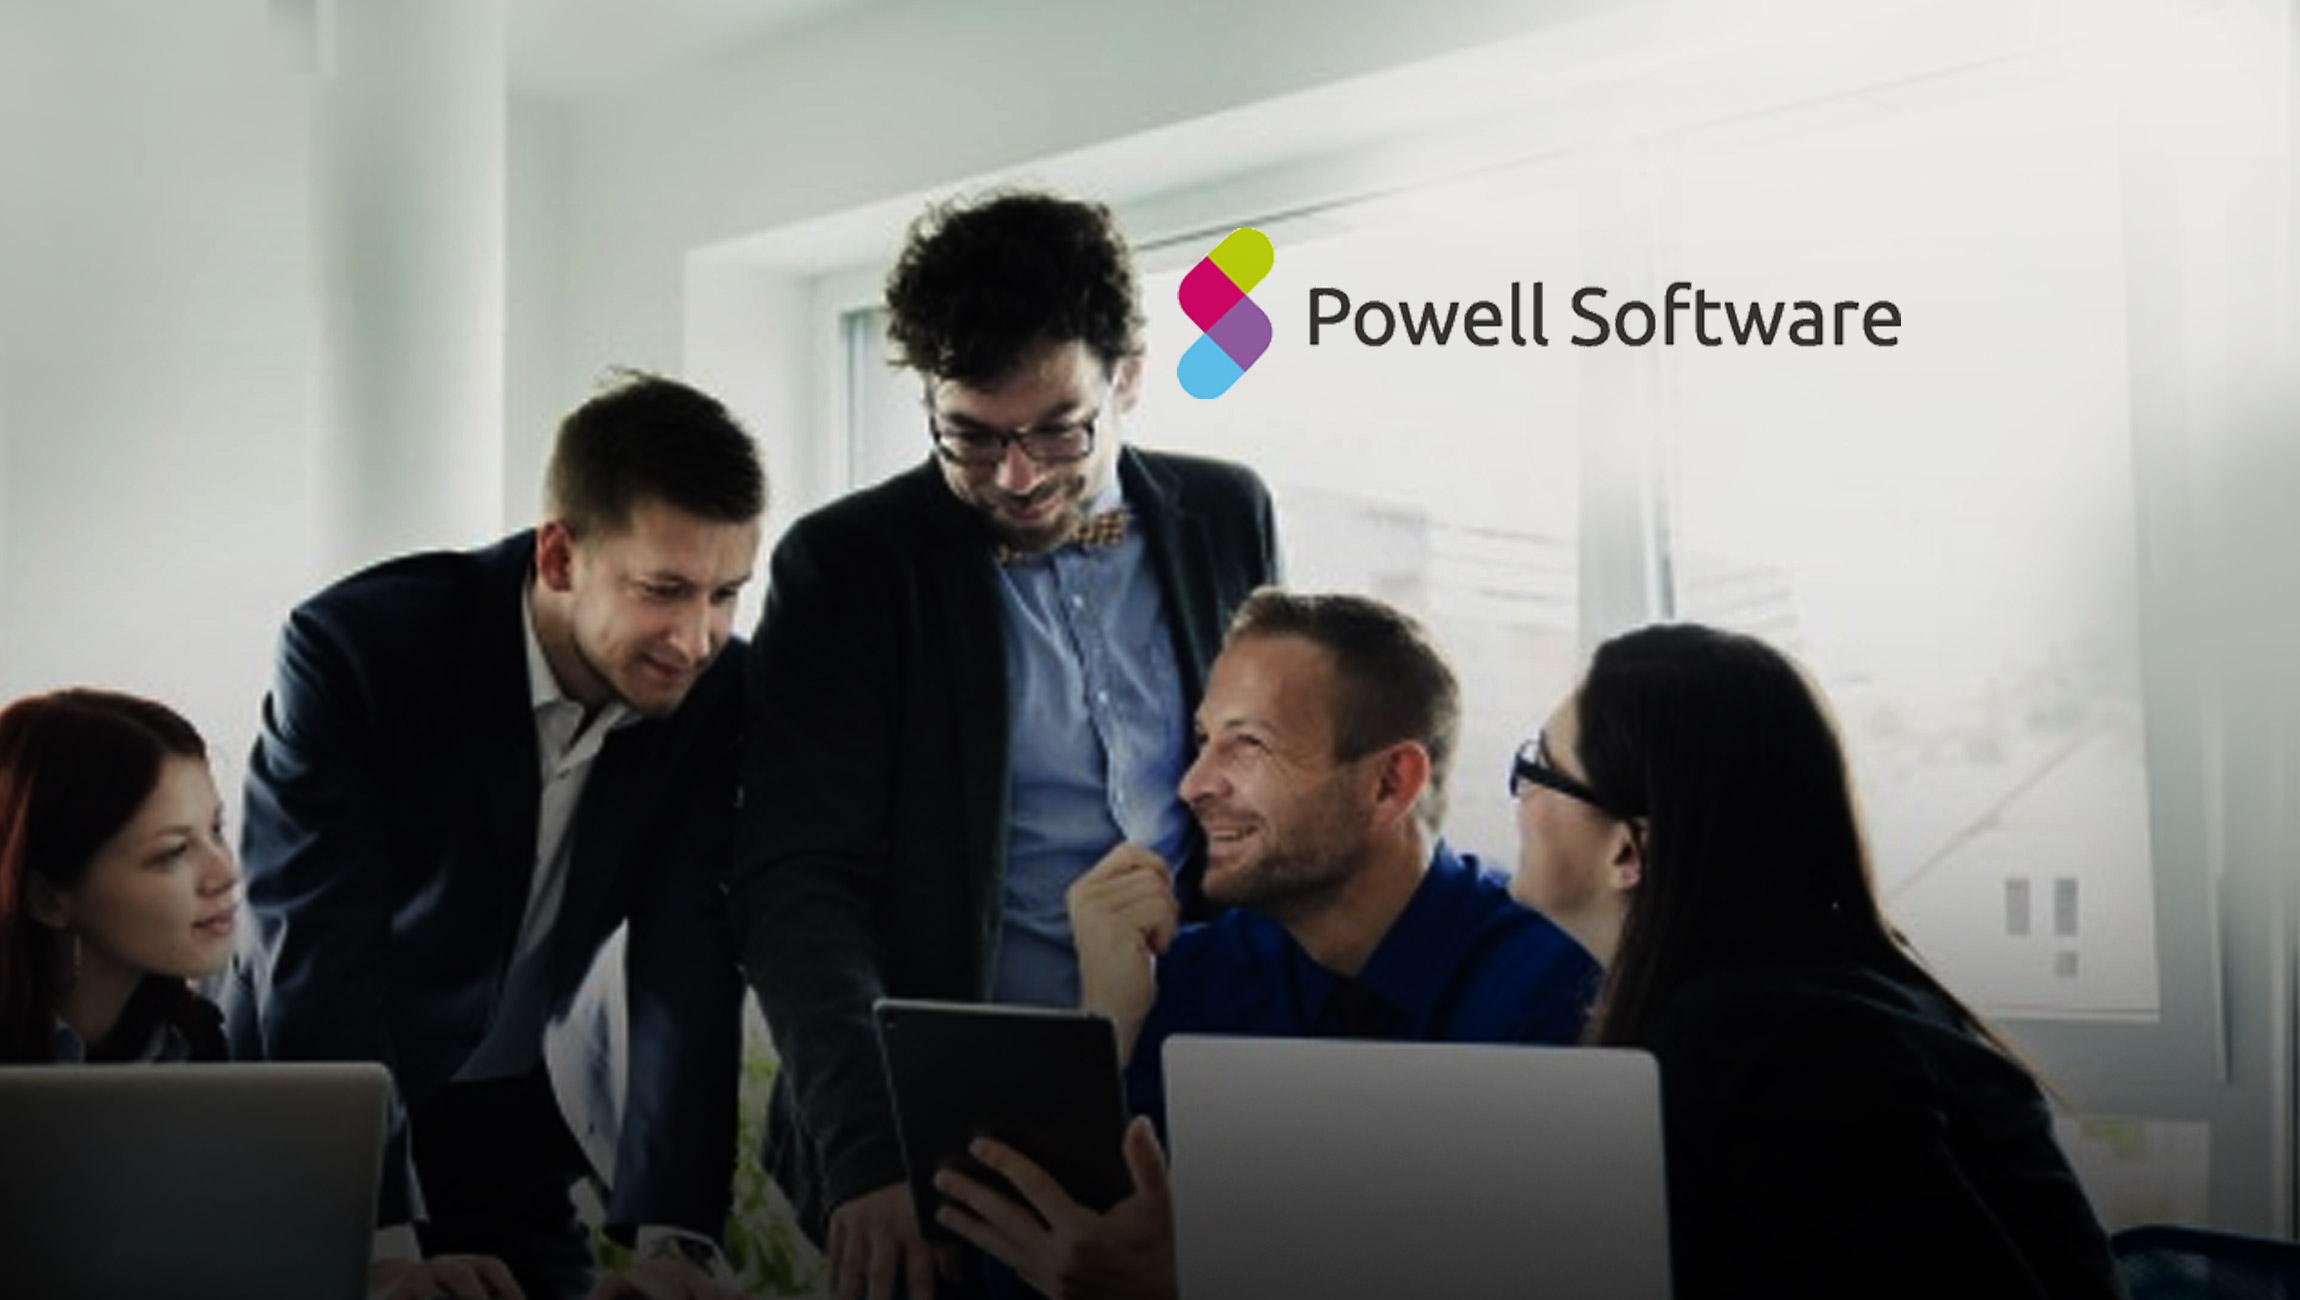 Powell Software Names New Board Member Marc Diouane to Position Company for Growth in US Market